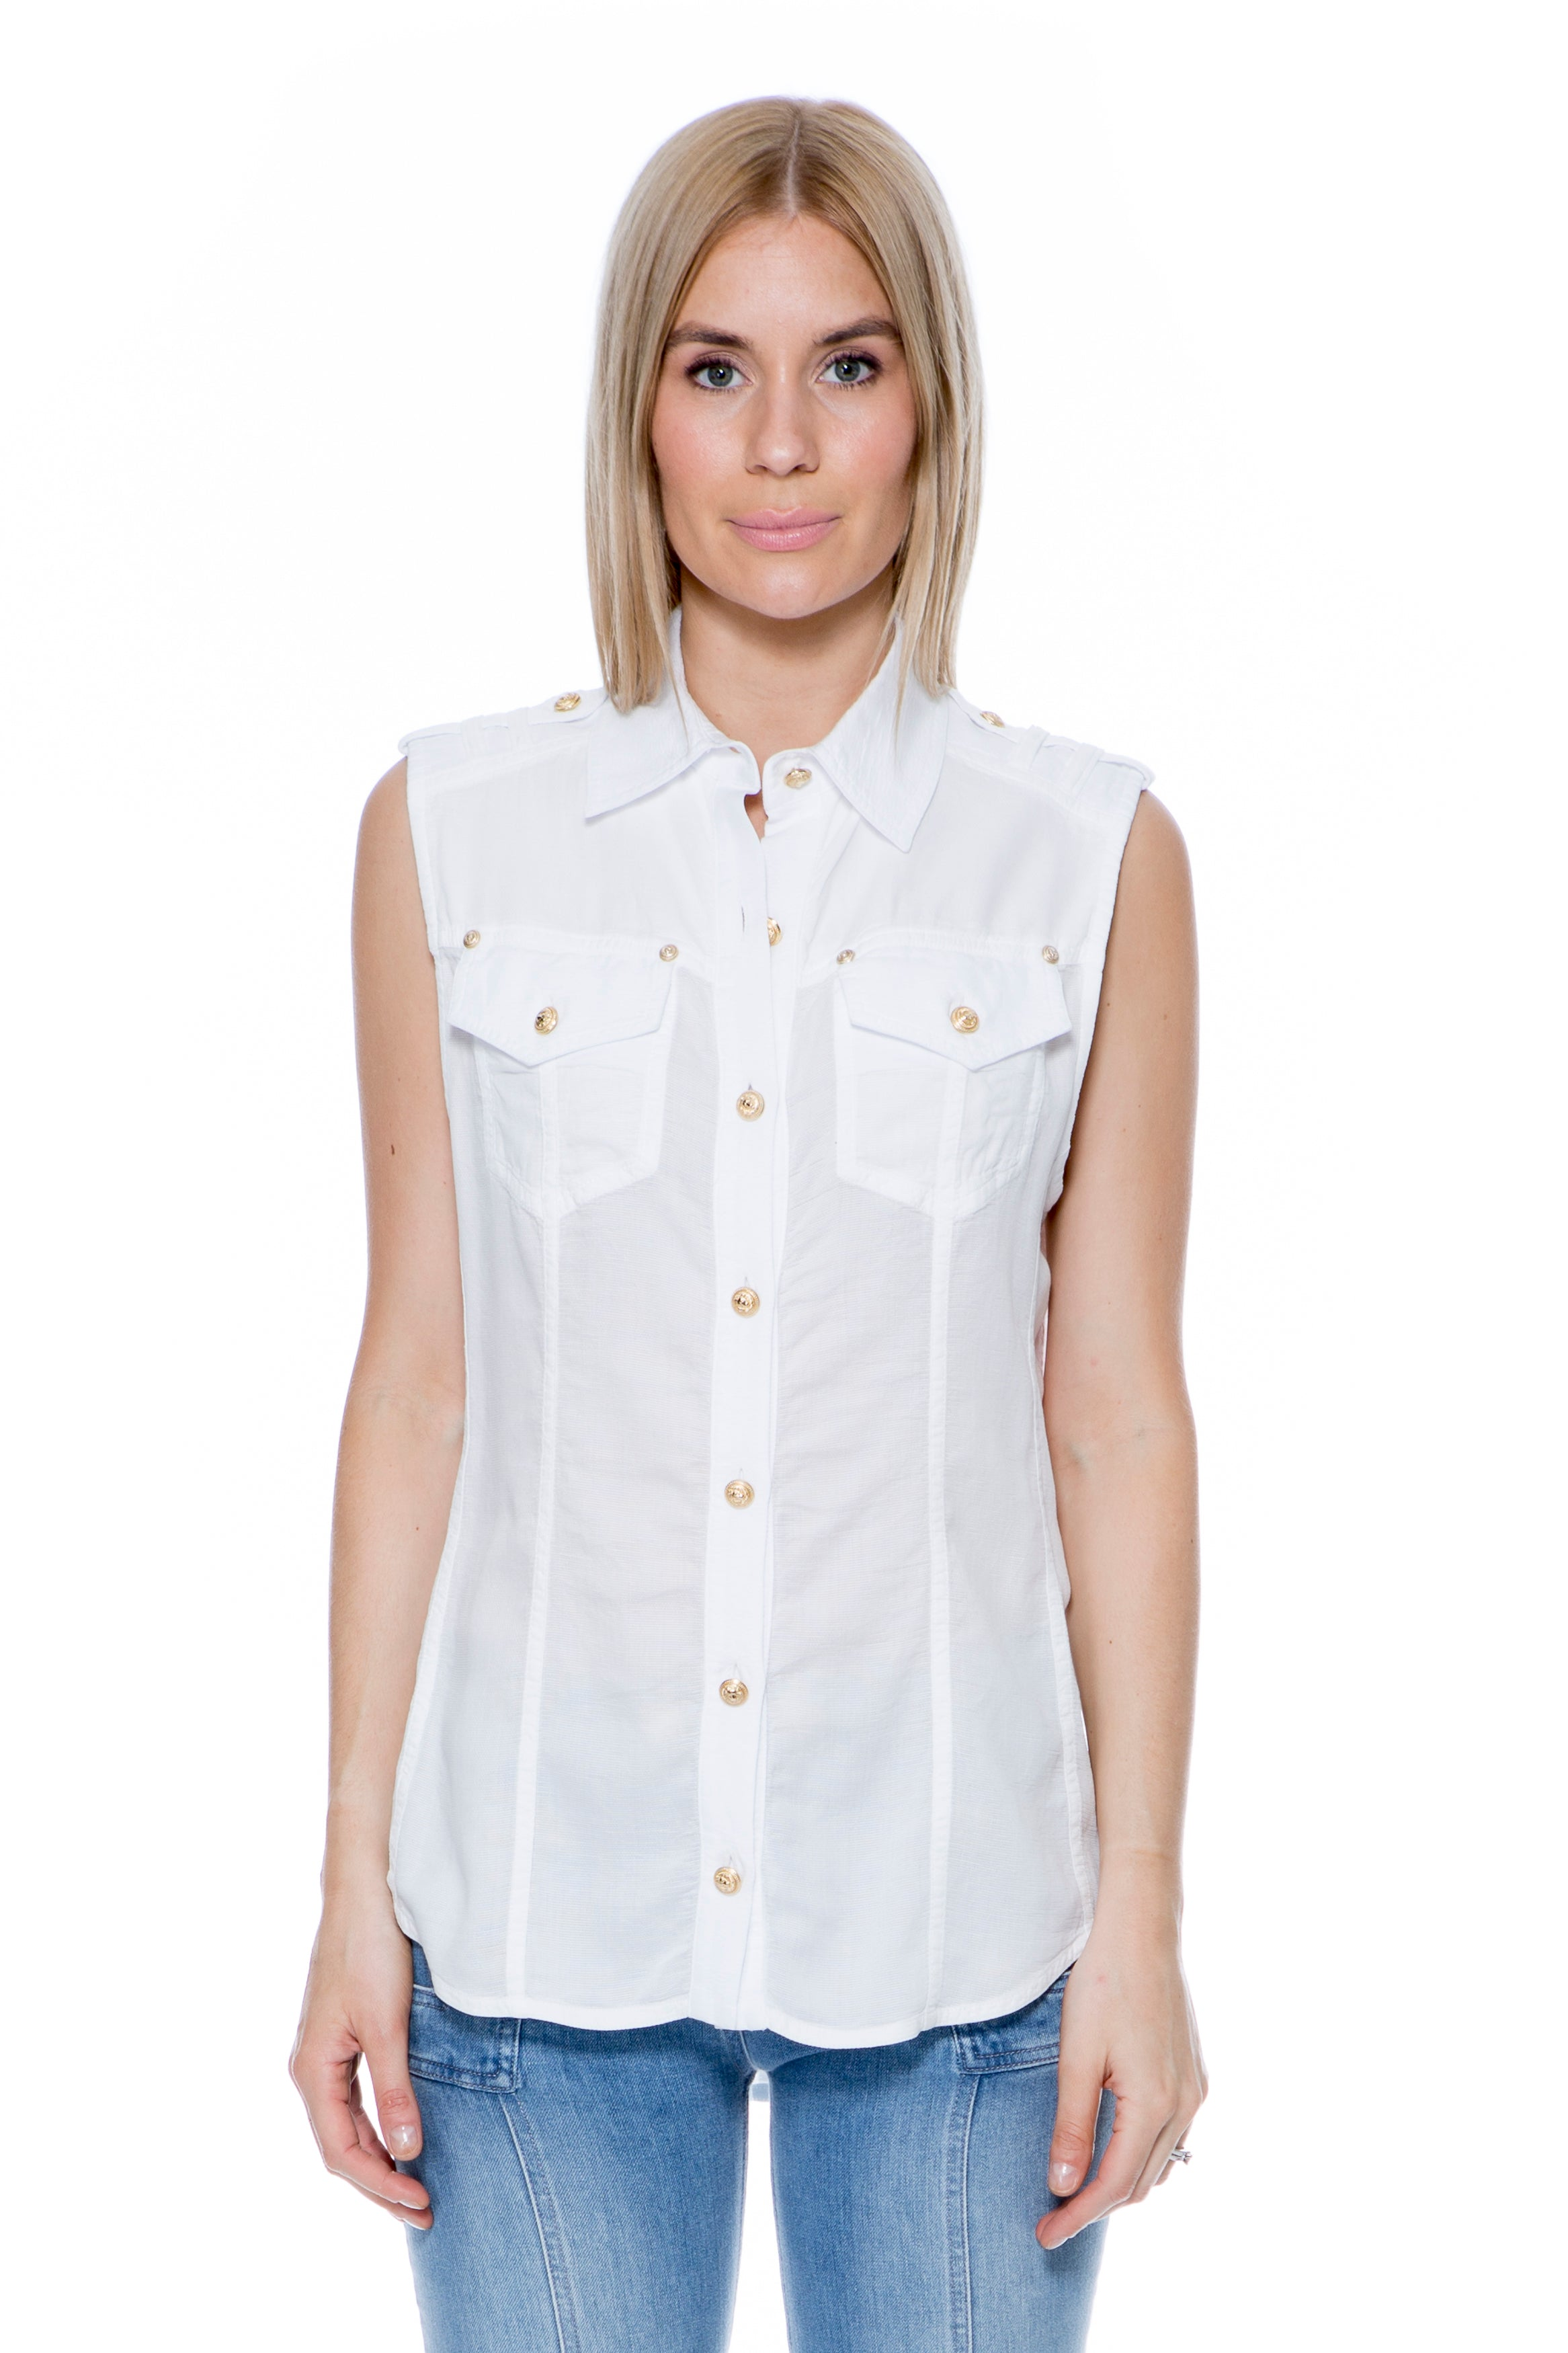 SLEEVELESS WHITE SHIRT WITH GOLD BUTTONS